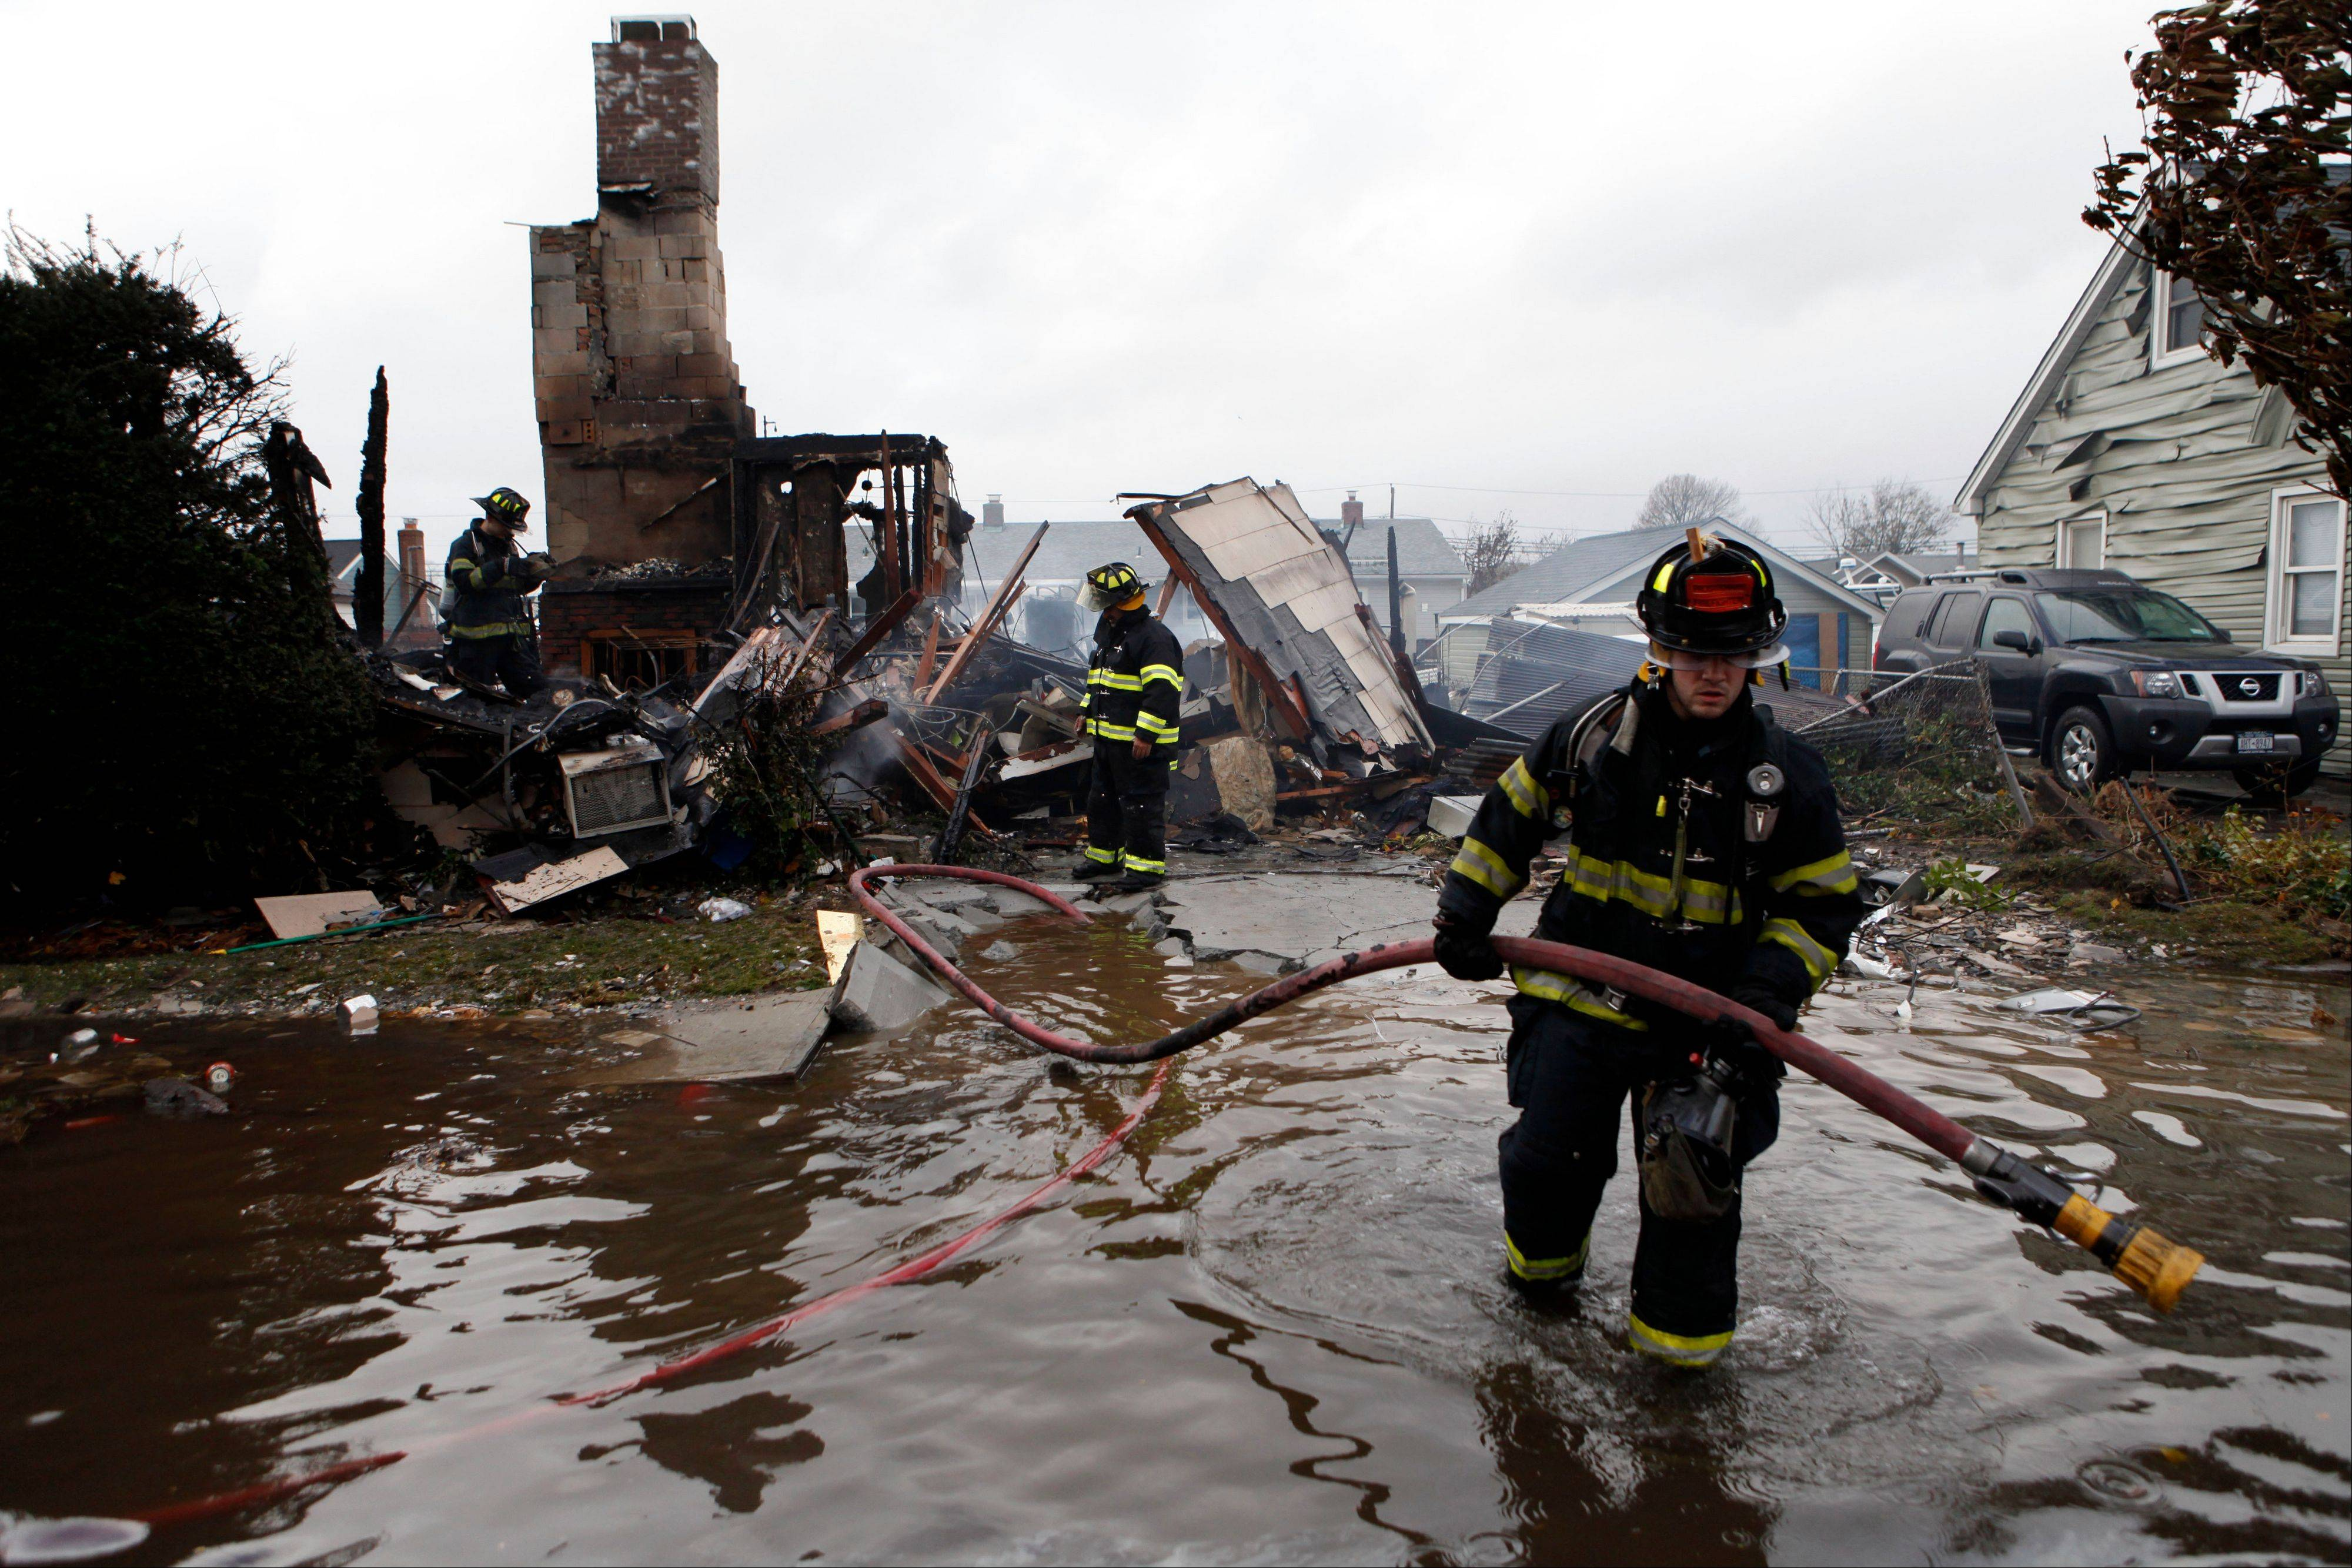 Firefighters work at the scene of a house fire in the aftermath of superstorm Sandy, Tuesday, Oct. 30, 2012, in Lindenhurst, N.Y. According to firefighters at the scene, fo